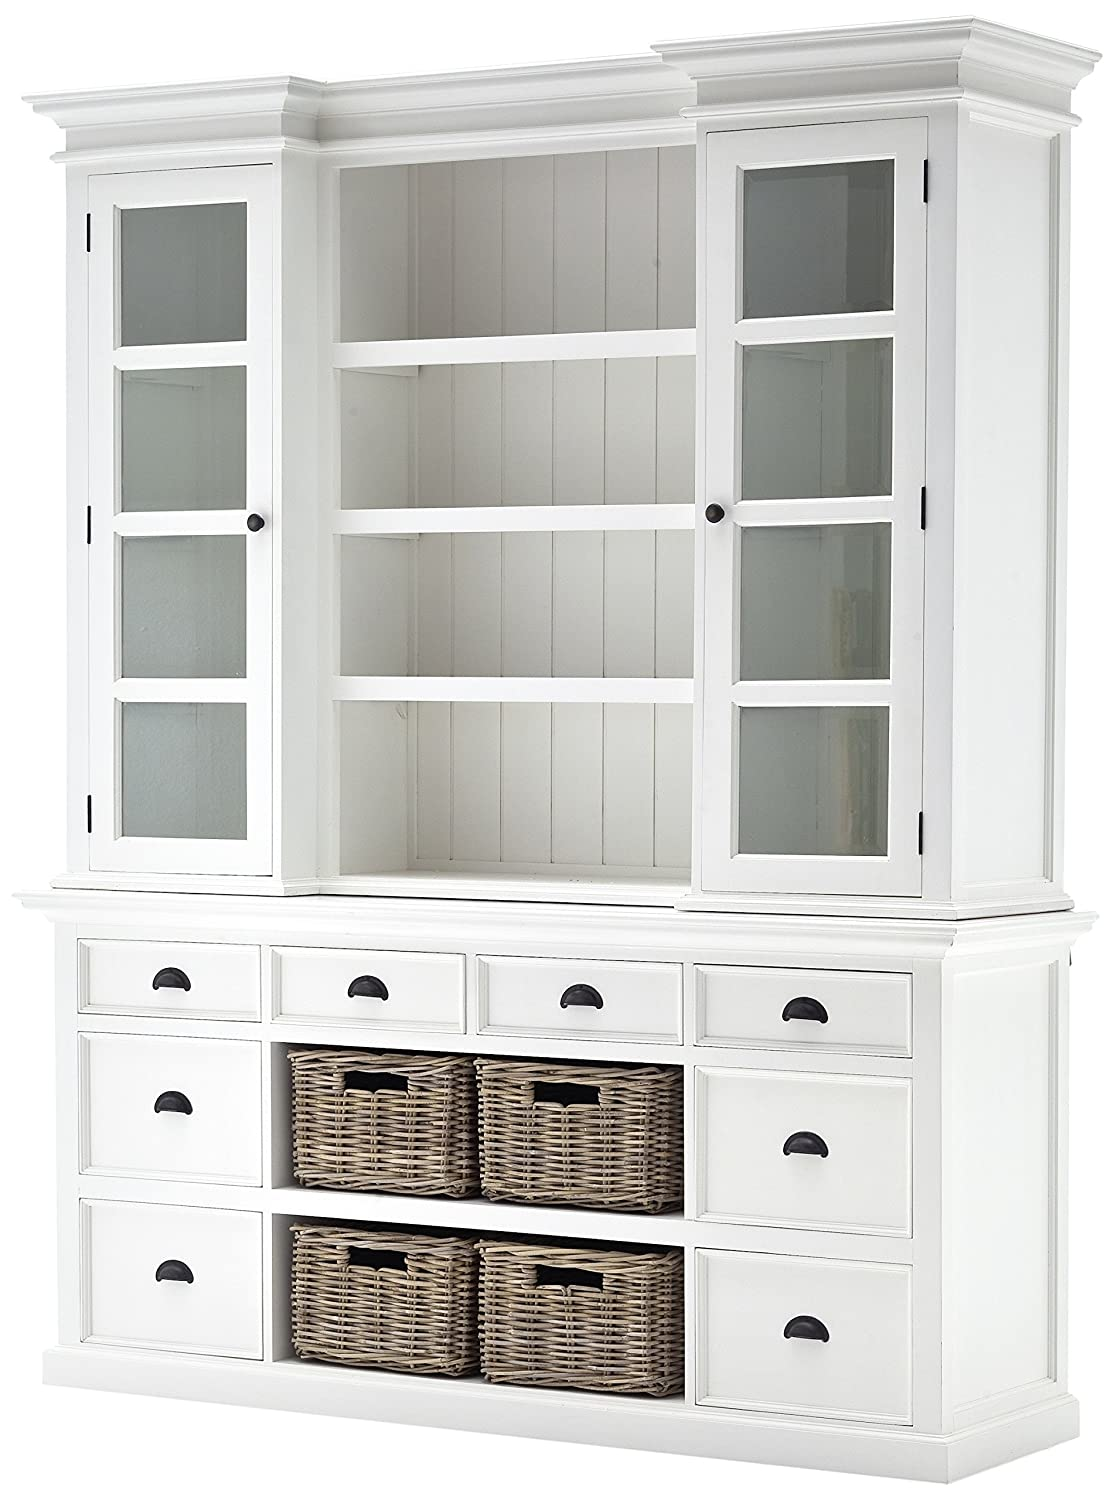 NovaSolo Library Hutch with Basket Set